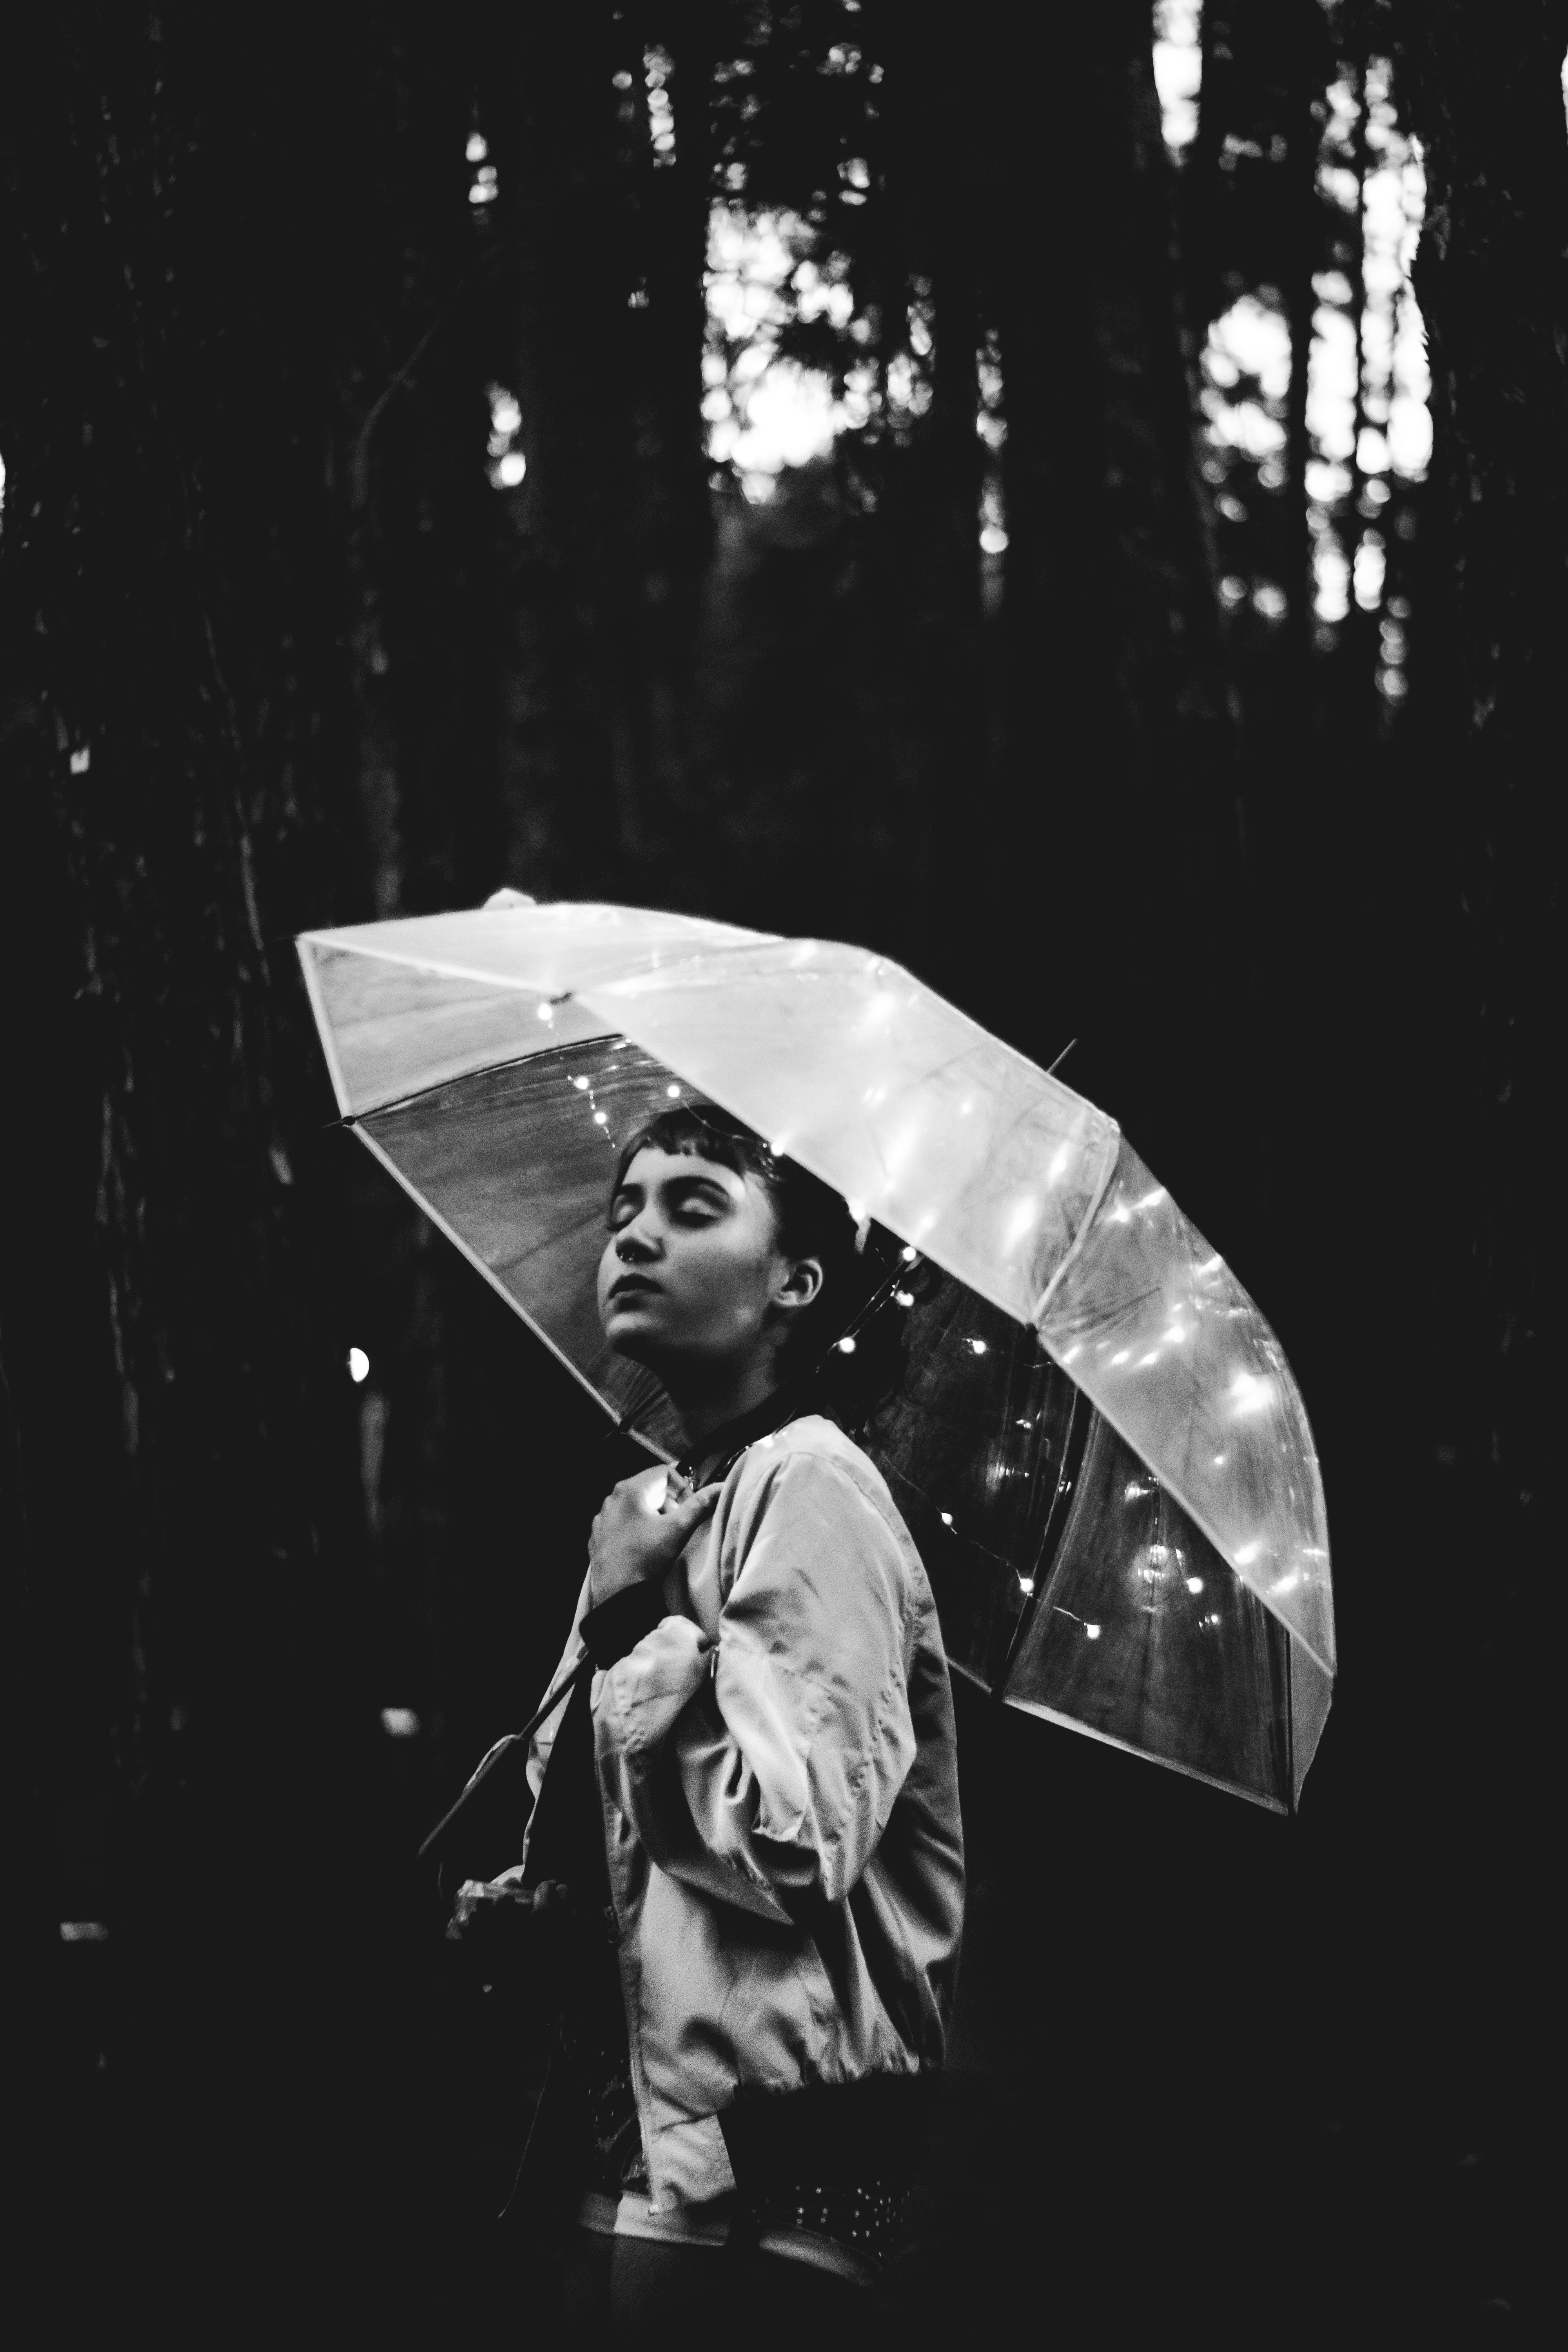 Grayscale image of woman walking through the rain while holding umbrella photo